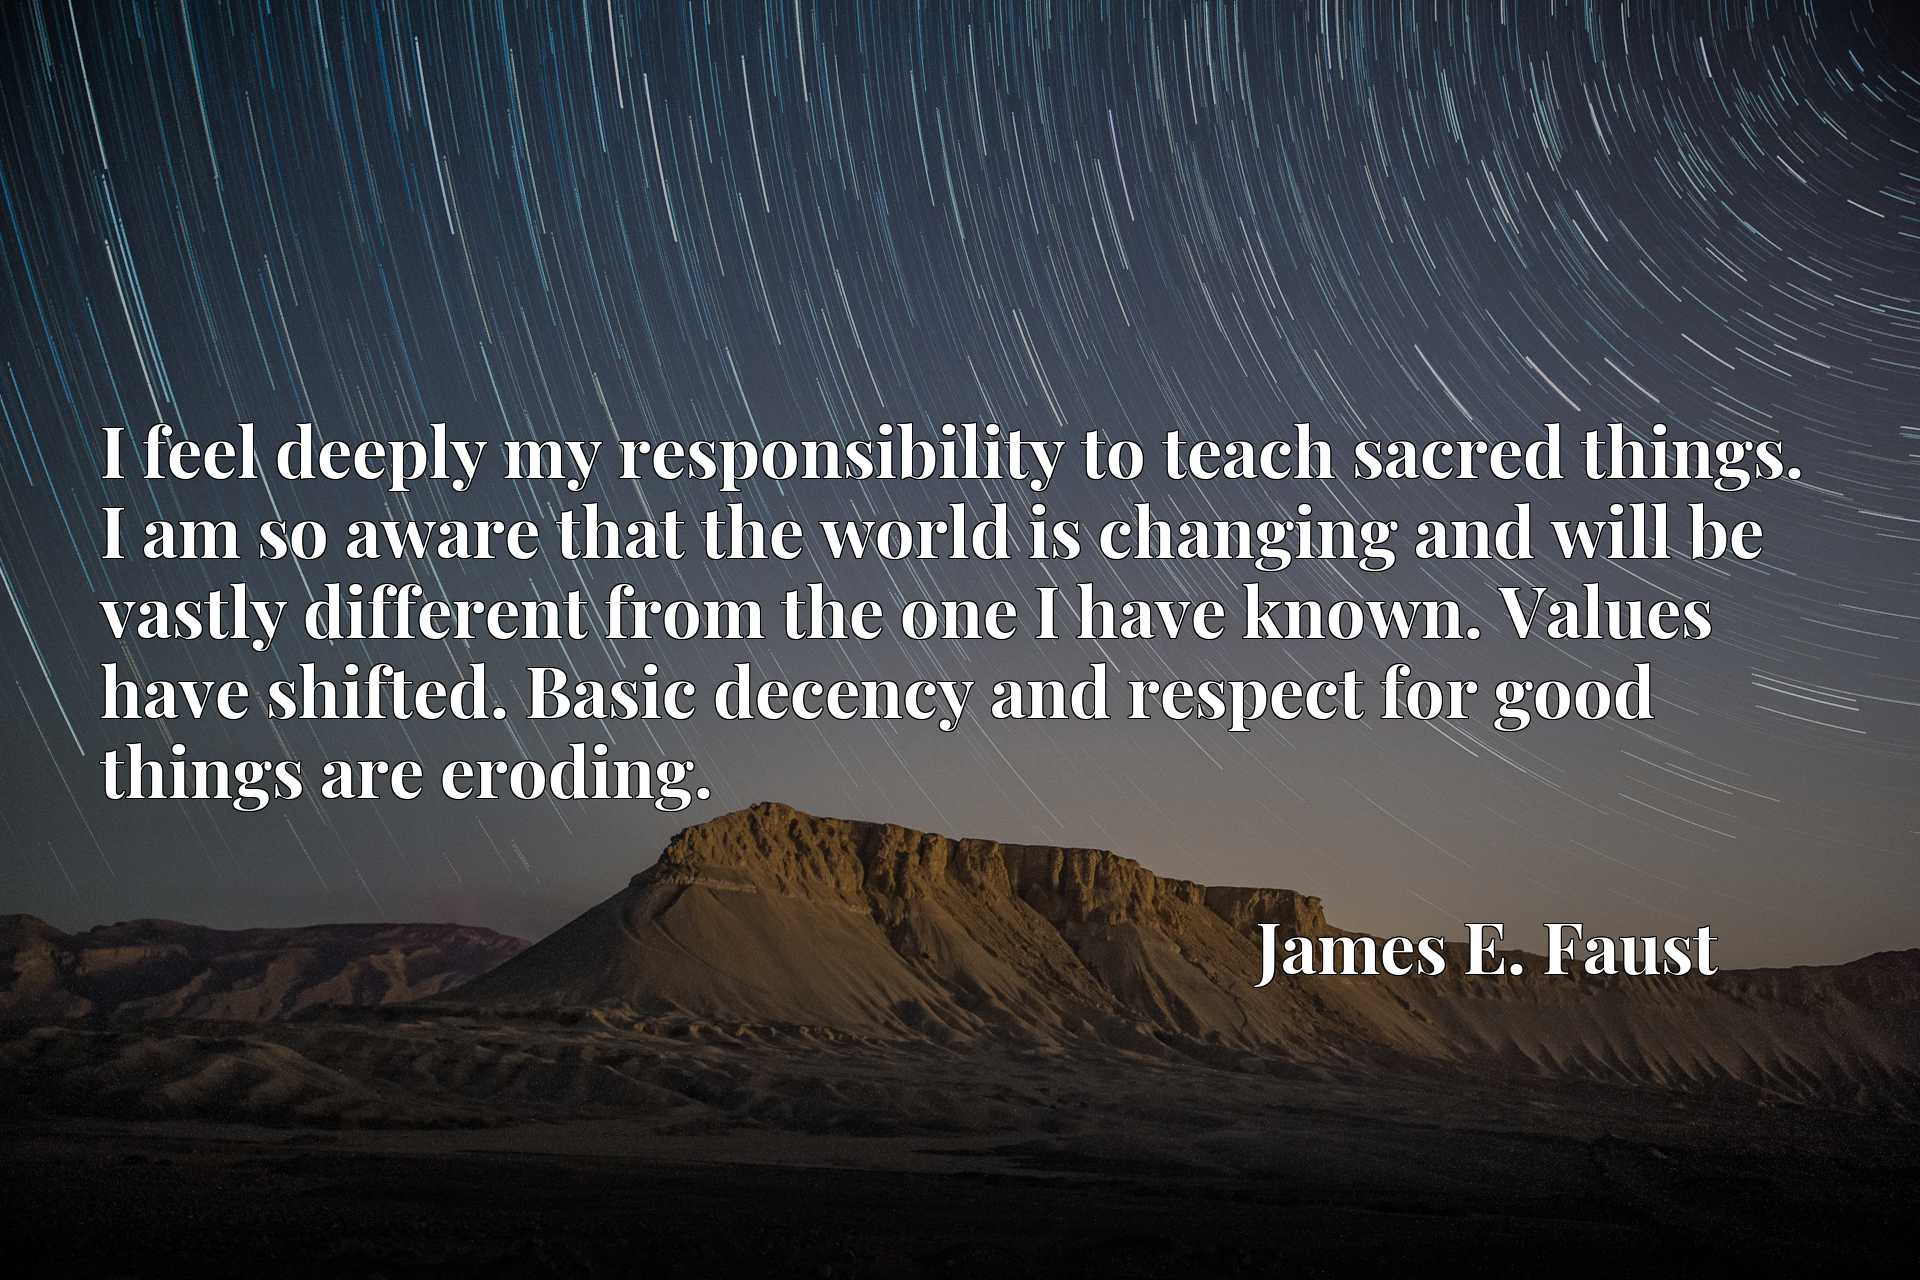 I feel deeply my responsibility to teach sacred things. I am so aware that the world is changing and will be vastly different from the one I have known. Values have shifted. Basic decency and respect for good things are eroding.